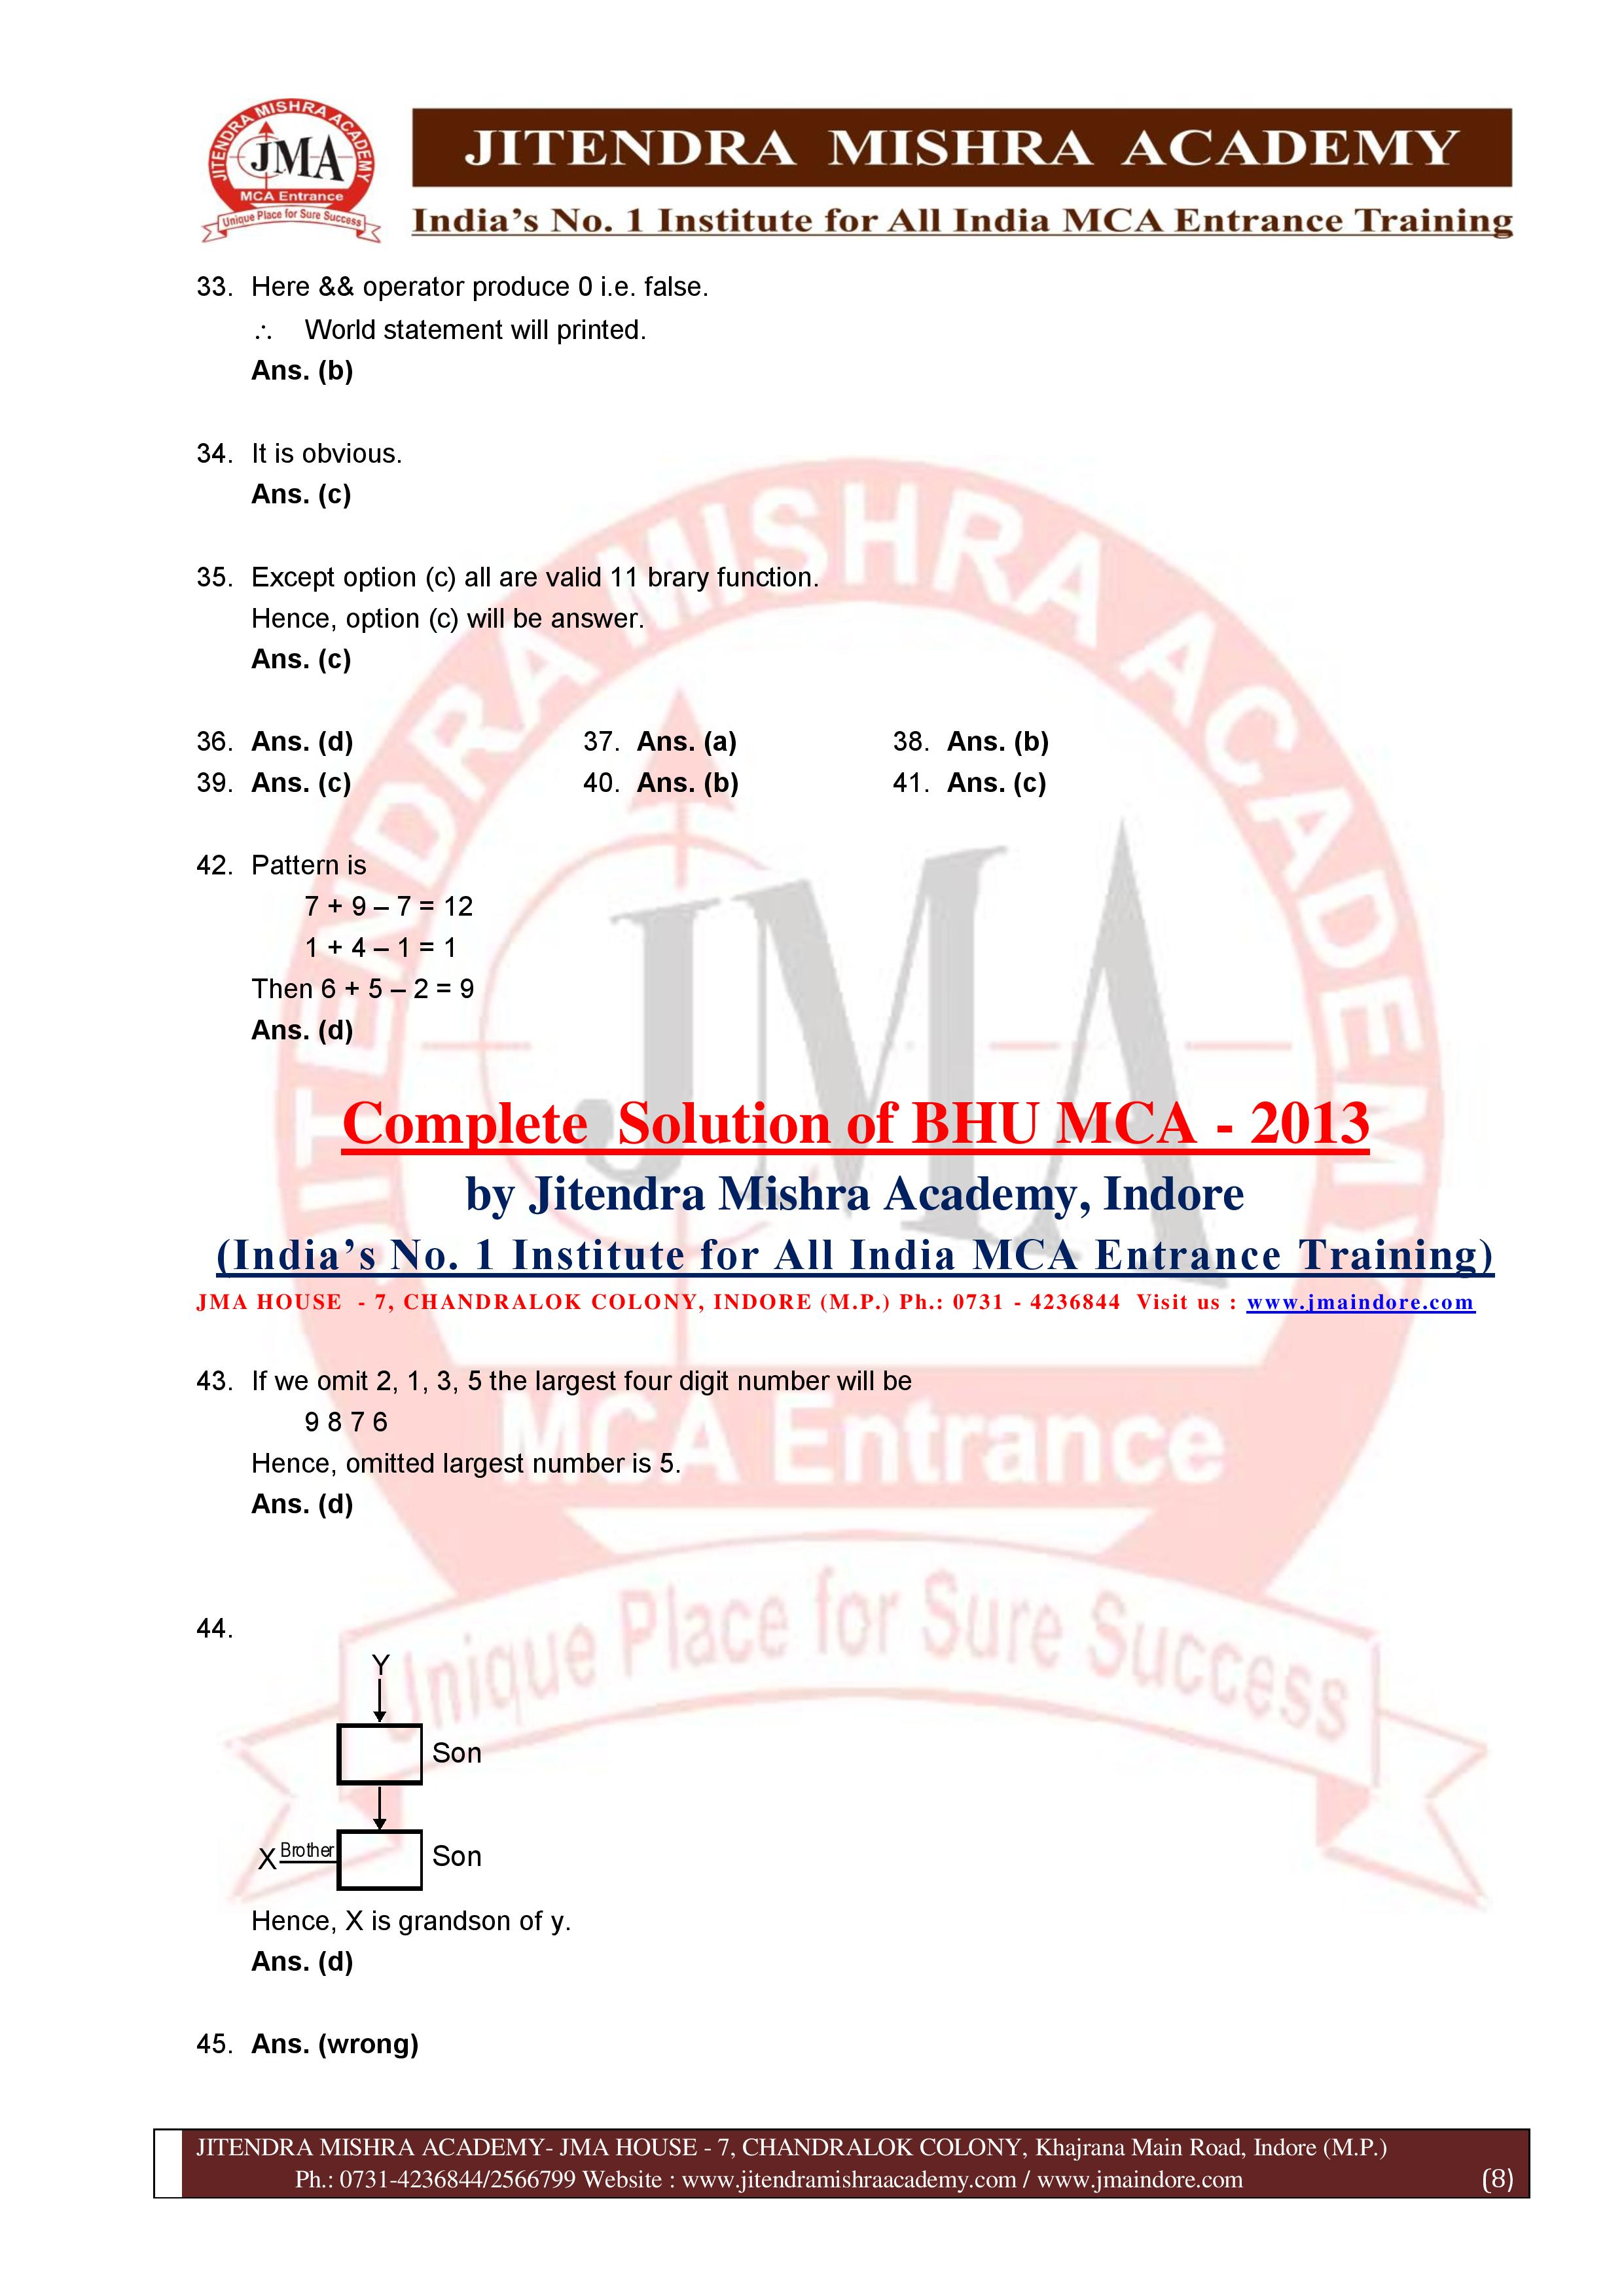 BHU 2013 SOLUTION (SET - 3) (06.07.16)-page-008